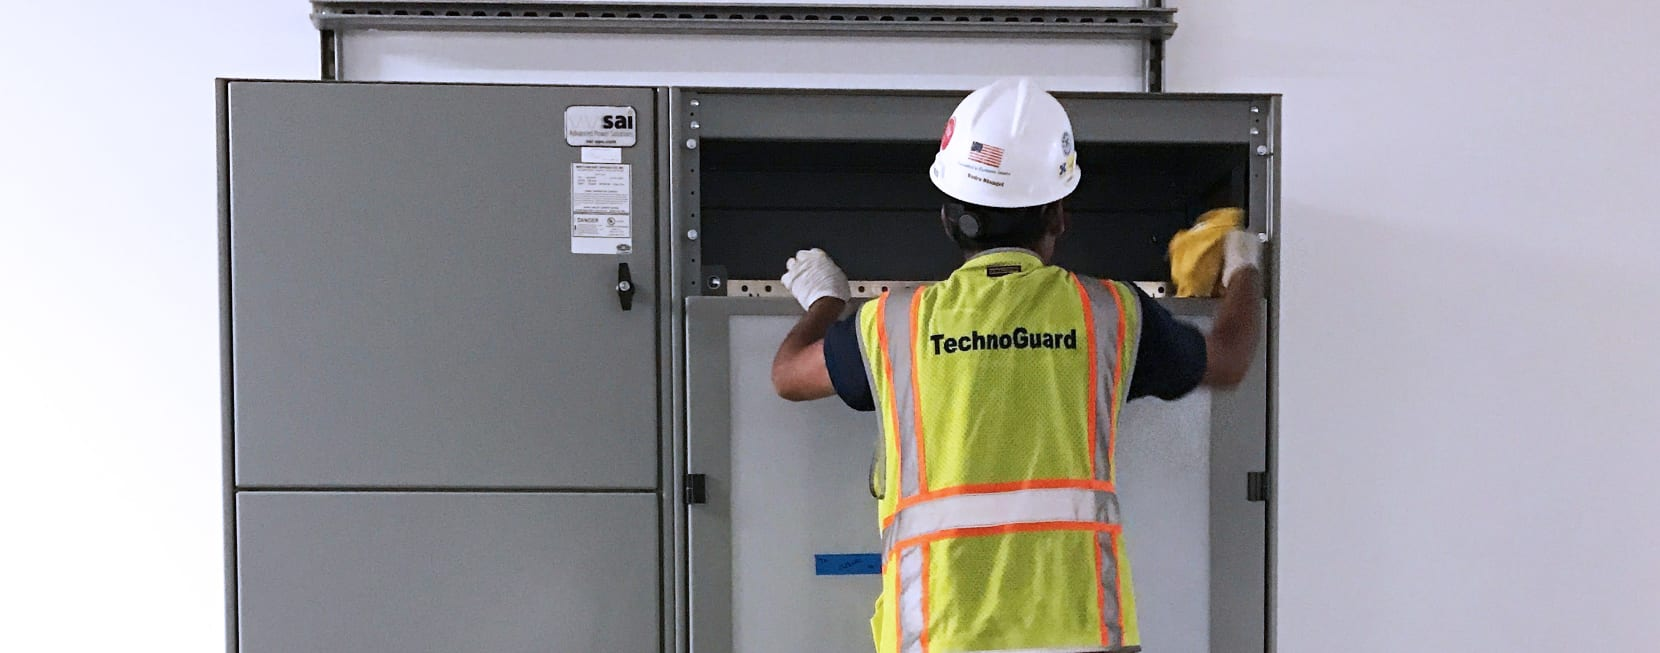 Technogaurd_Equipment_Cleaning_Data_Center